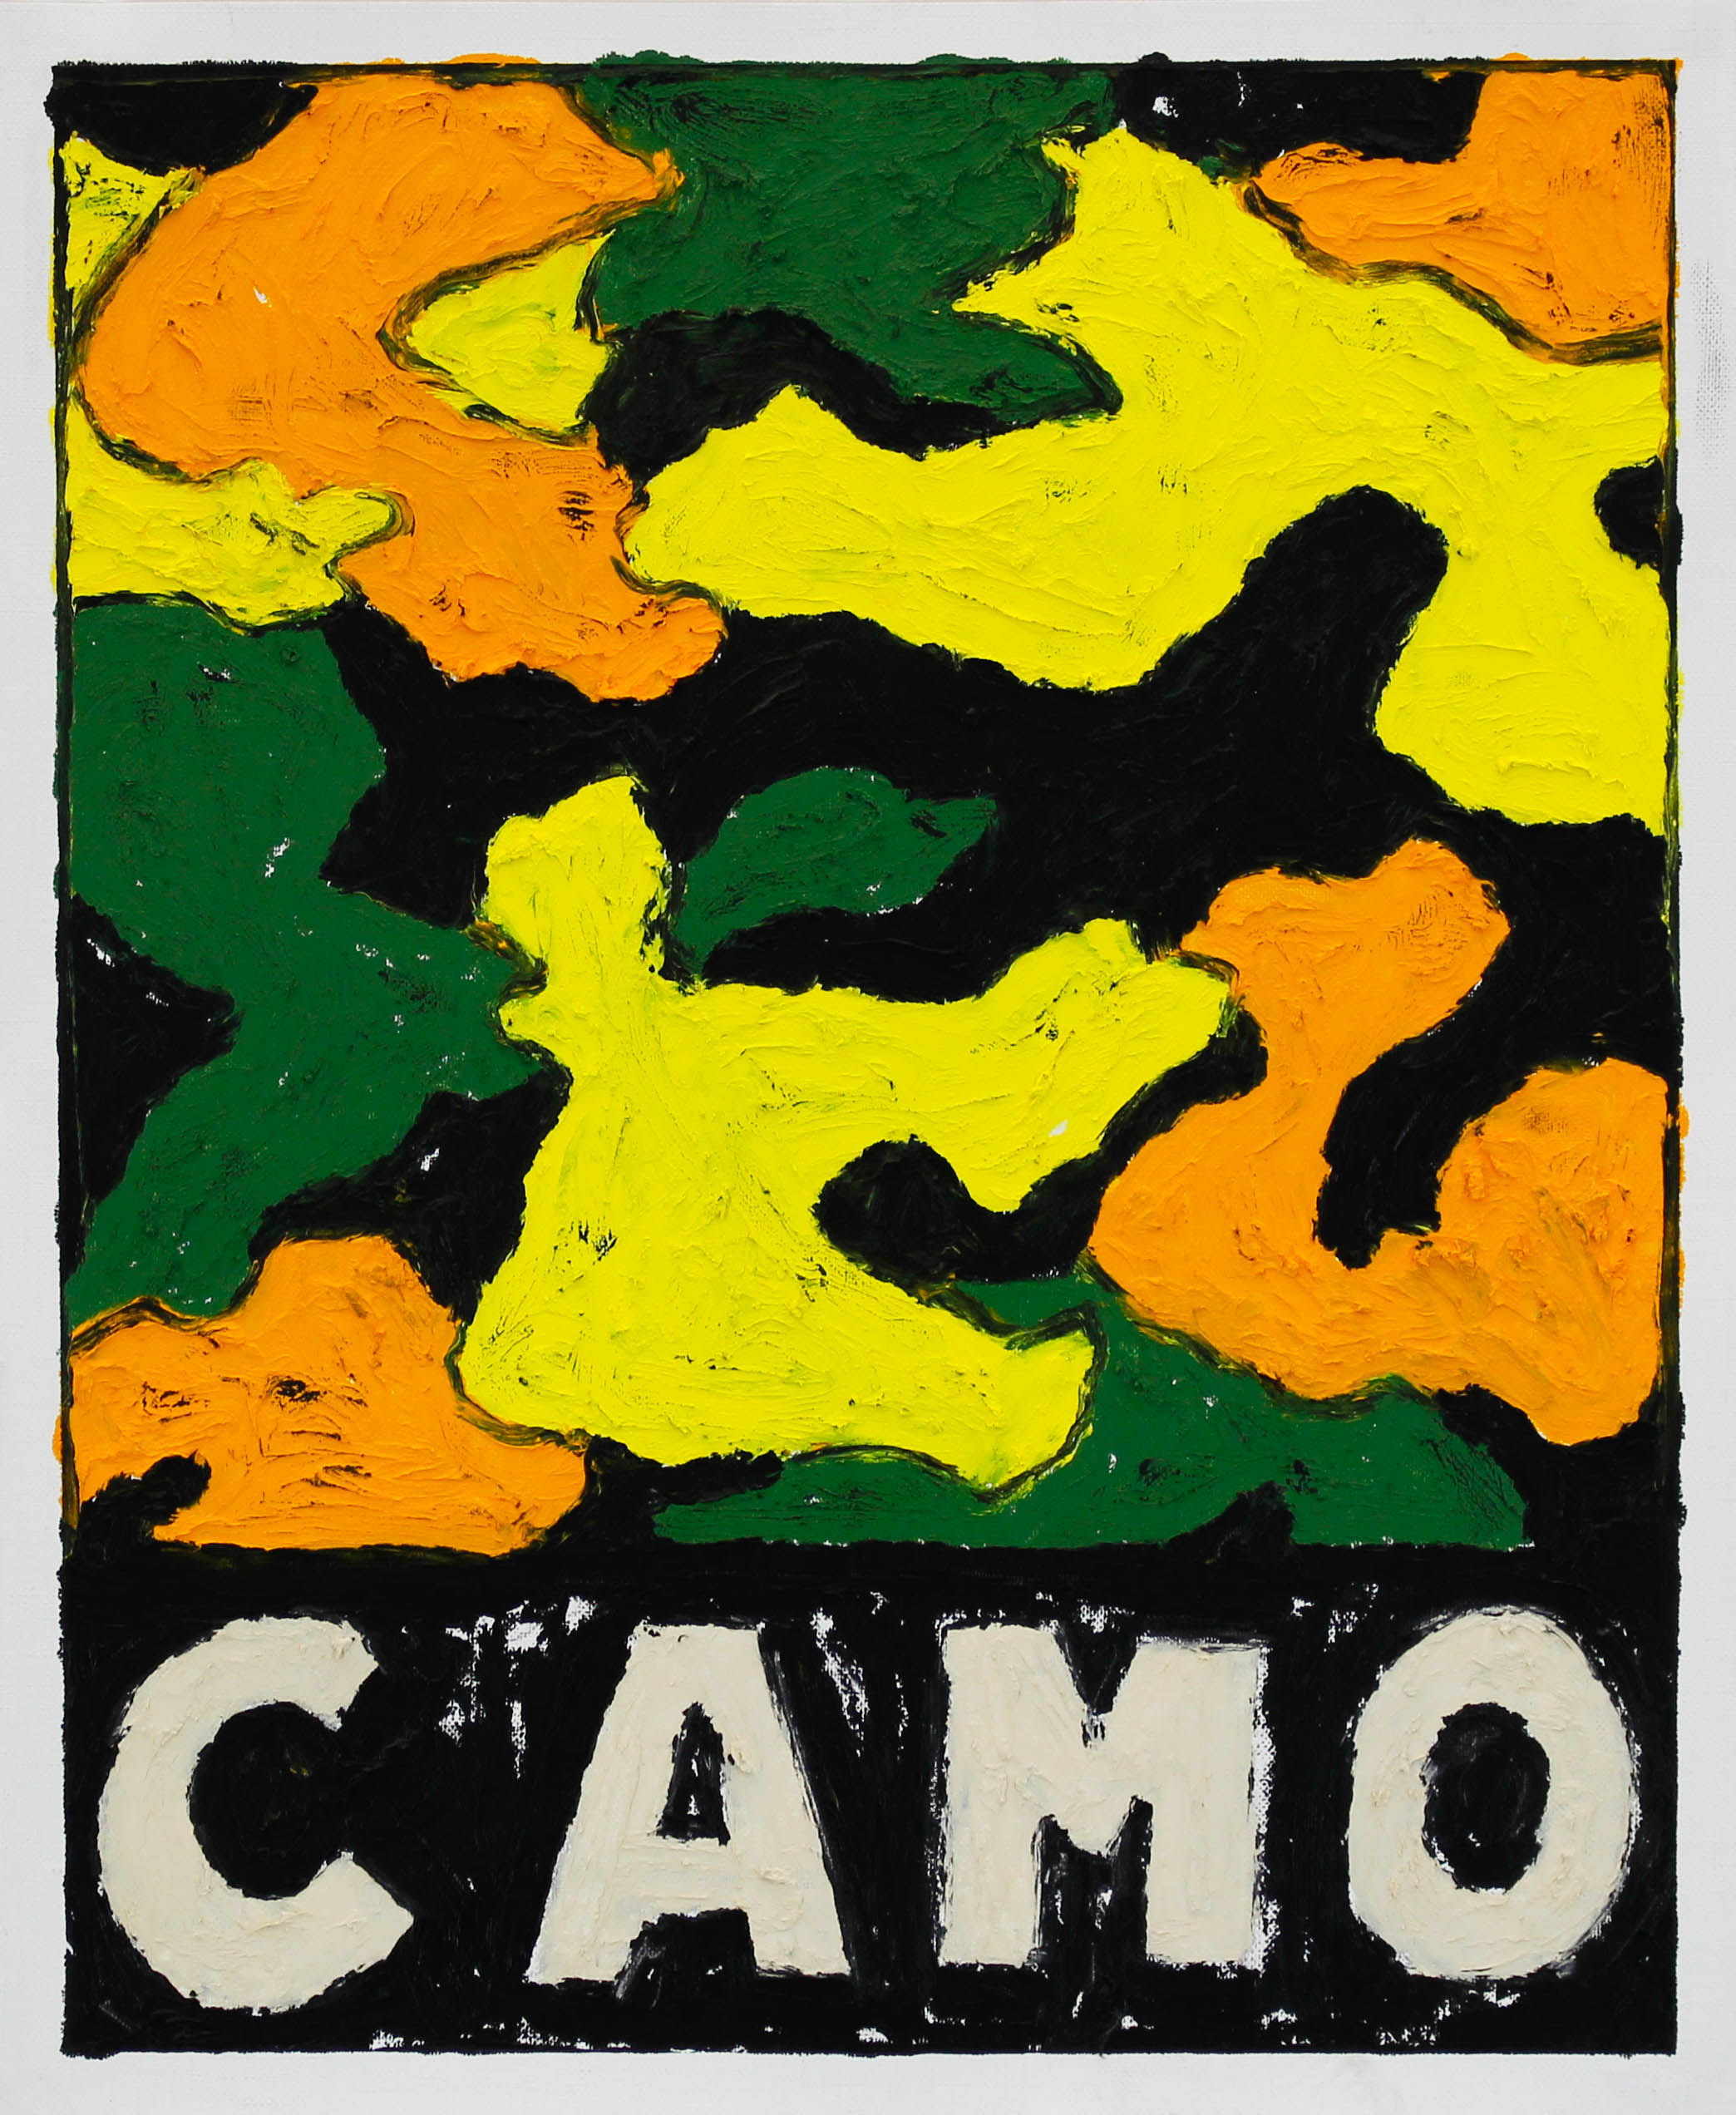 """""""CAMO (YLW/ORNG/GRN/BLK)"""" / 2019 OILSTICK ON UNSTRETCHED CANVAS FRAMED IN WHITE WITH ARTGLASS AR70 42 X 51 CM 4900 NOK"""